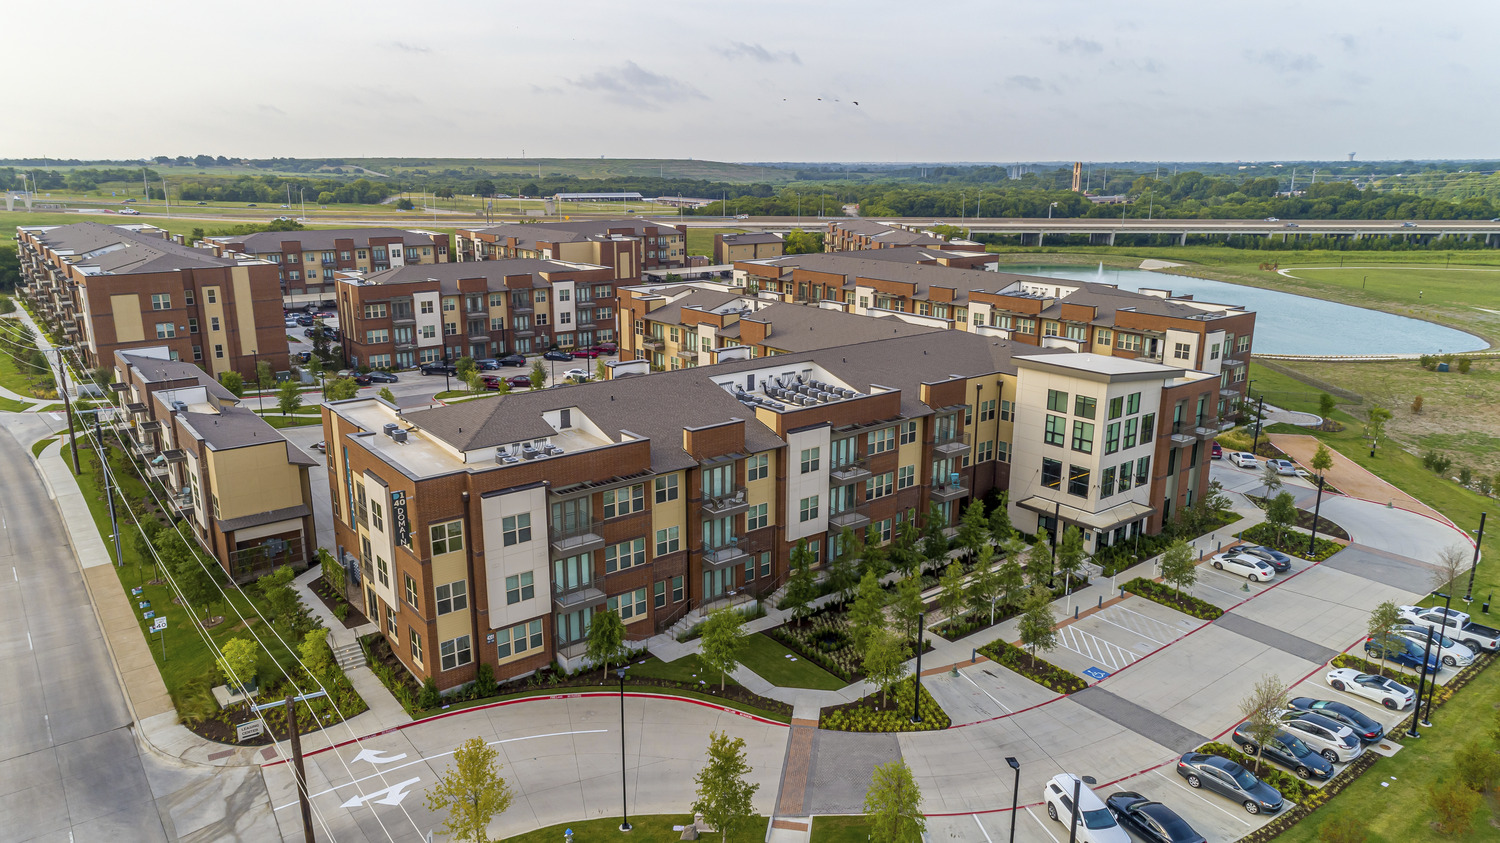 CBG builds Domain at the One Forty, a 10-Building Garden-Style Community with Amenities in Garland, TX